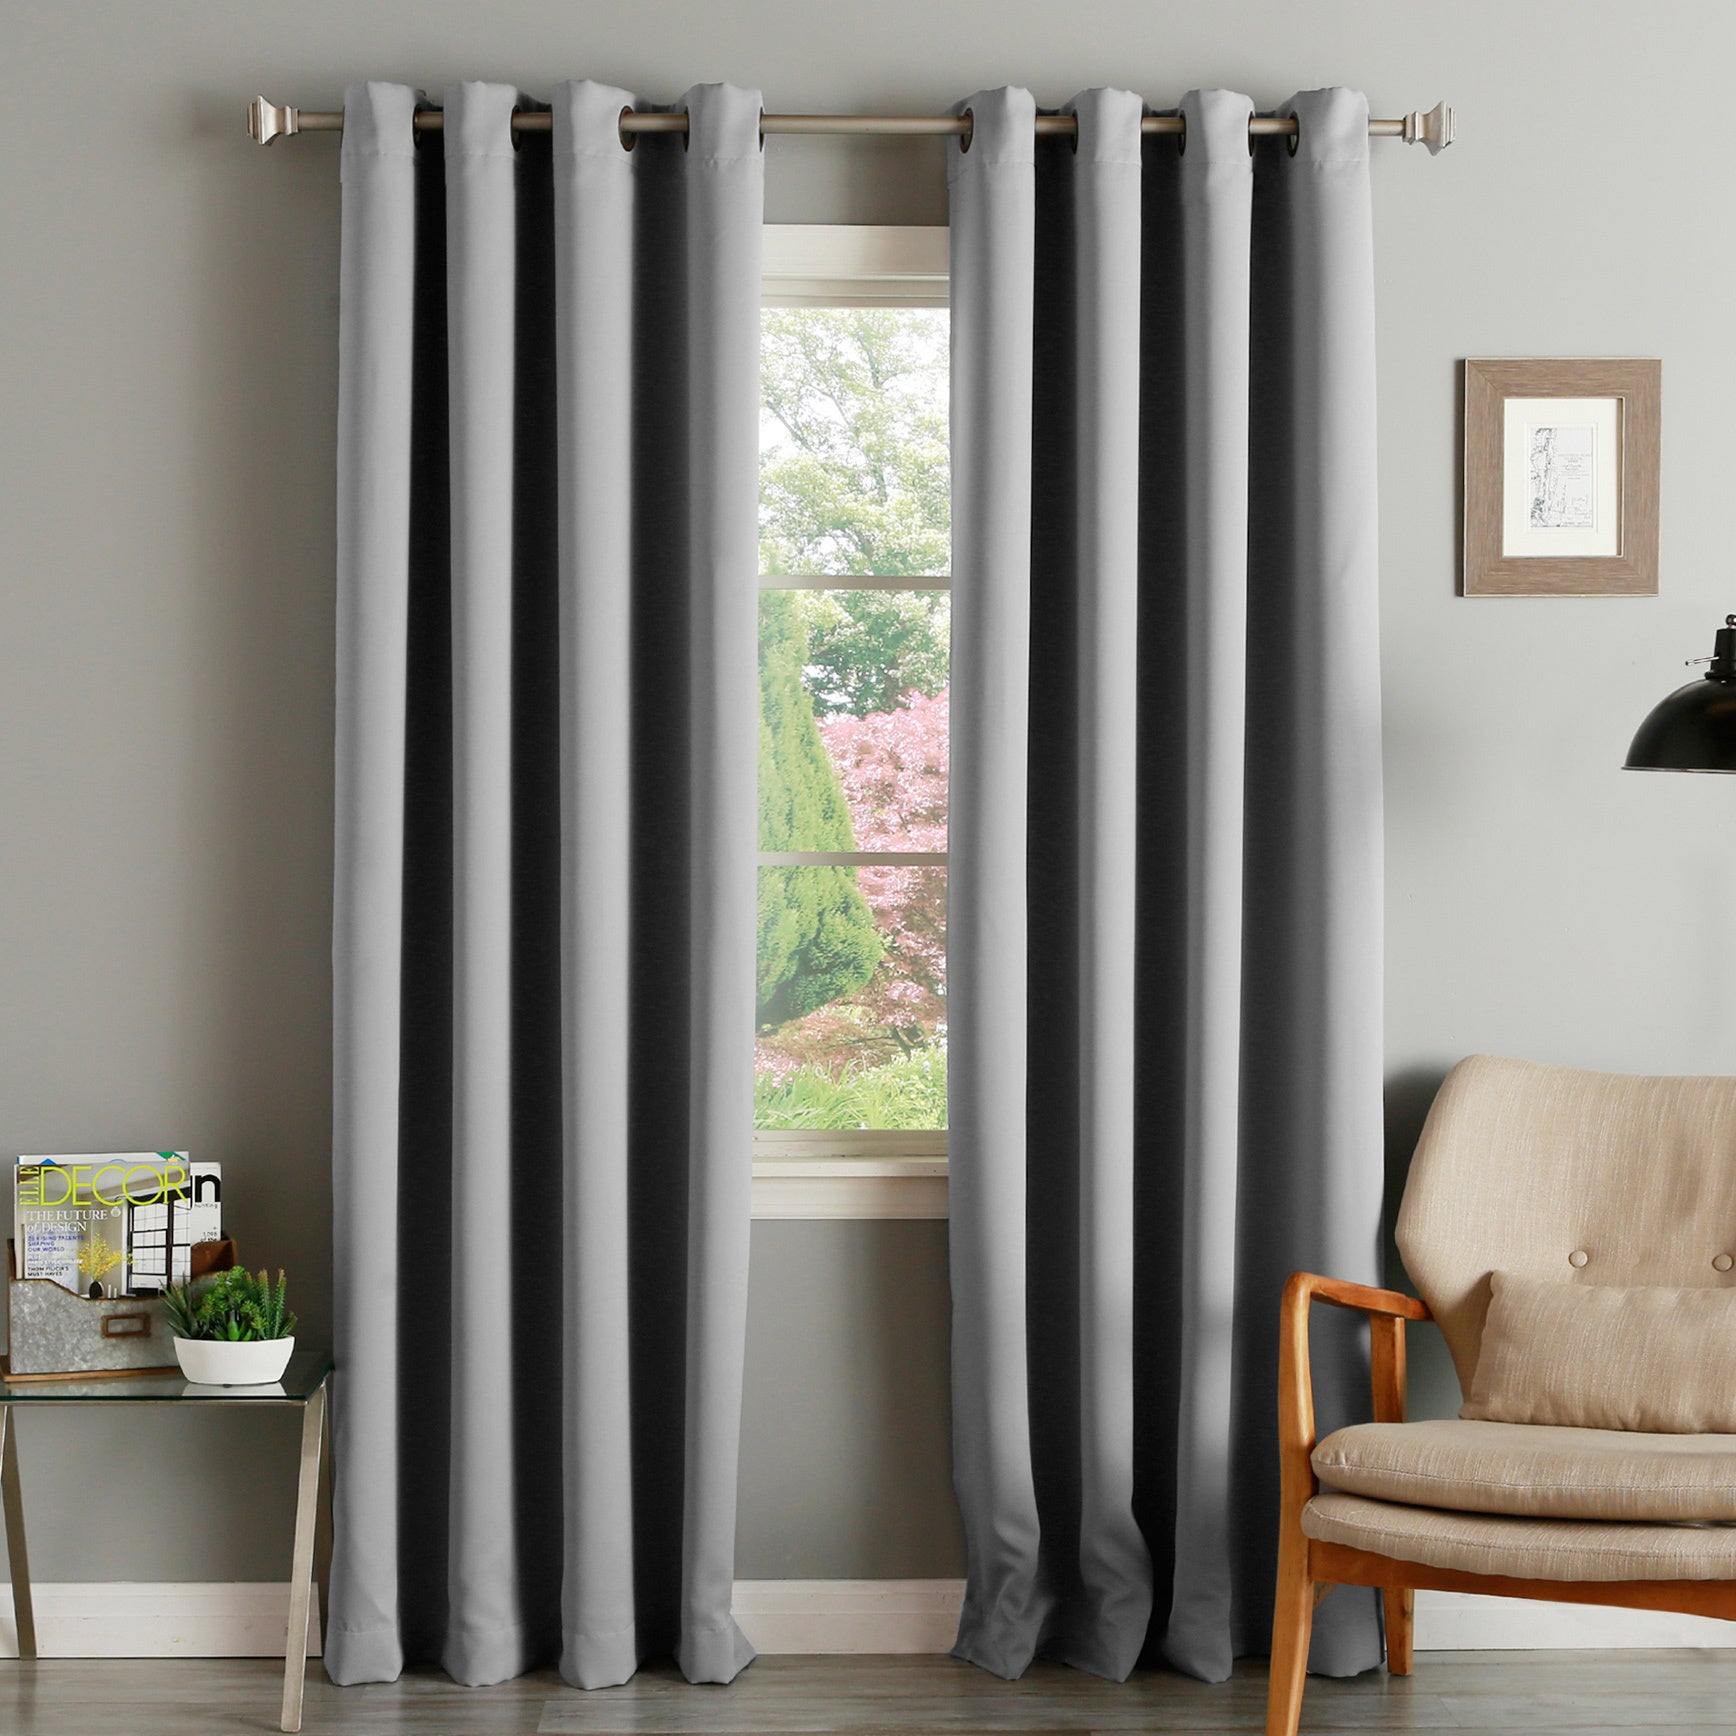 Aurora Home Thermal Insulated Blackout Grommet Top Curtain Panel Pair In Insulated Blackout Grommet Window Curtain Panel Pairs (View 3 of 20)